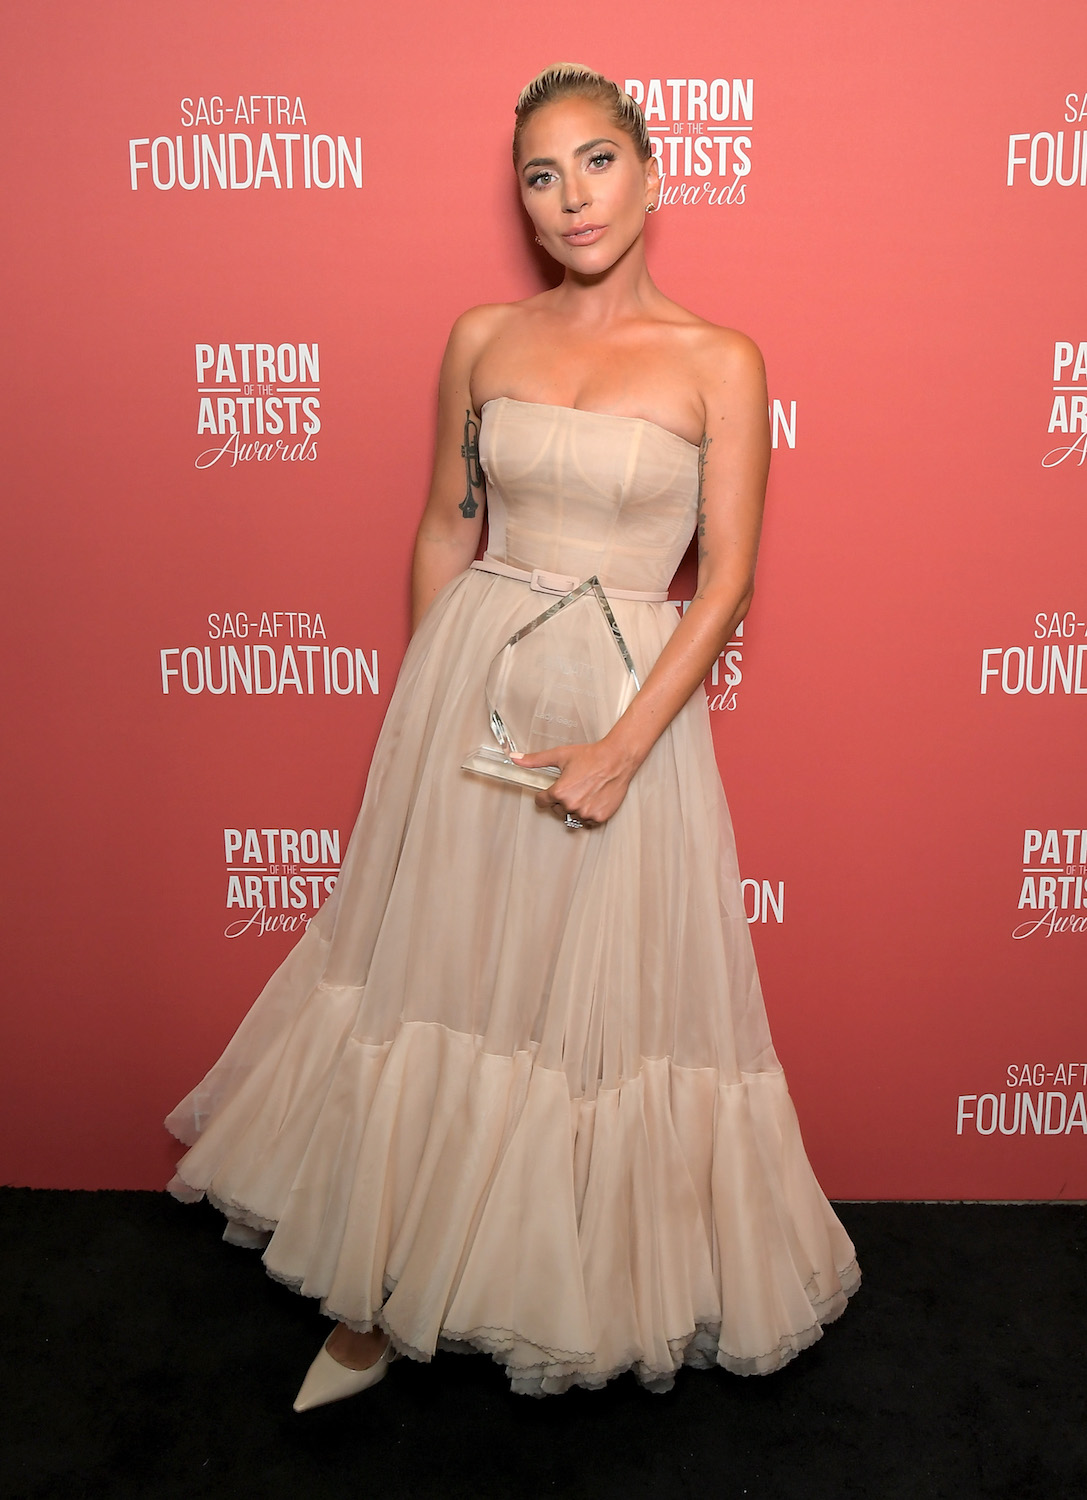 Lady Gaga attends the SAG-AFTRA Foundation's 3rd Annual Patron of the Artists Awards at the Wallis Annenberg Center for the Performing Arts on November 8, 2018 in Beverly Hills, California.